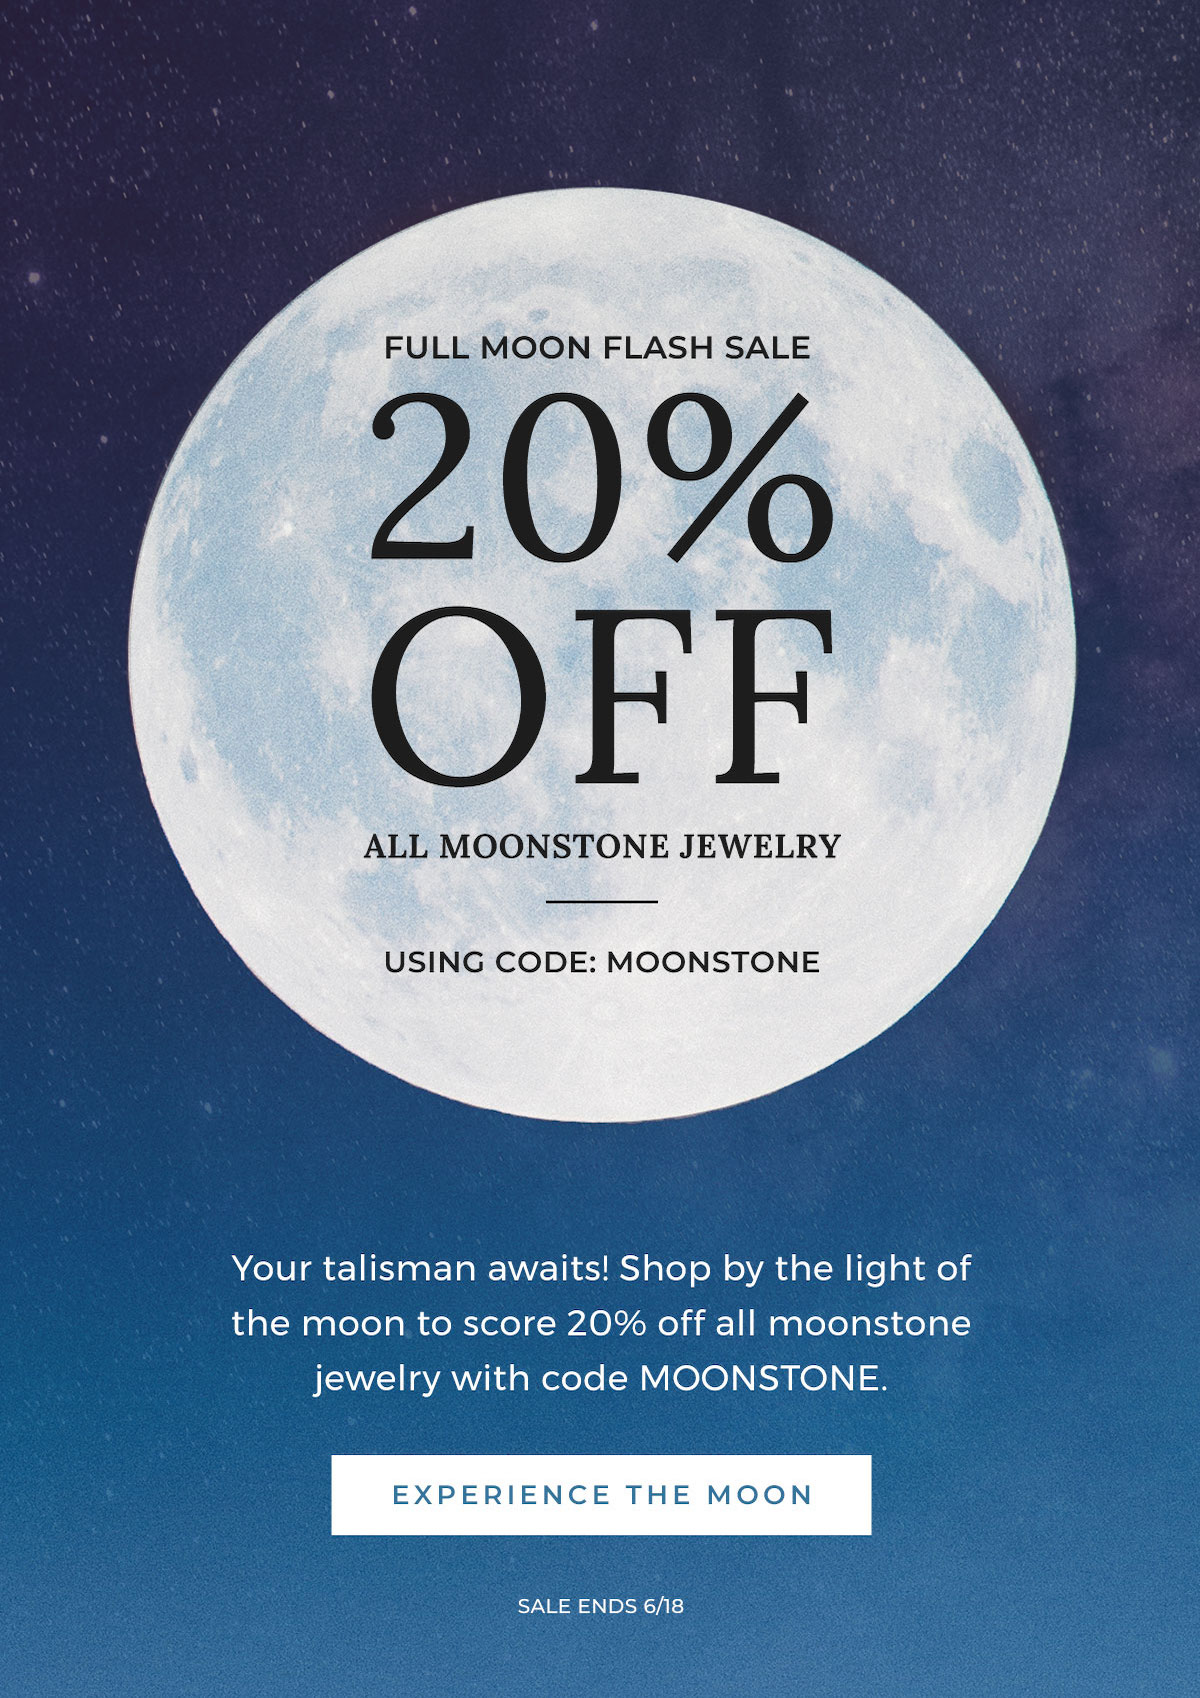 Full Moon Flash Sale - 20% Off All Moonstone Jewelry Using Code MOONSTONE - Your talisman awaits! Shop by the light of the moon to score 20% off all moonstone jewelry with code MOONSTONE. | EXPERIENCE THE MOON - Sale Ends 6/18